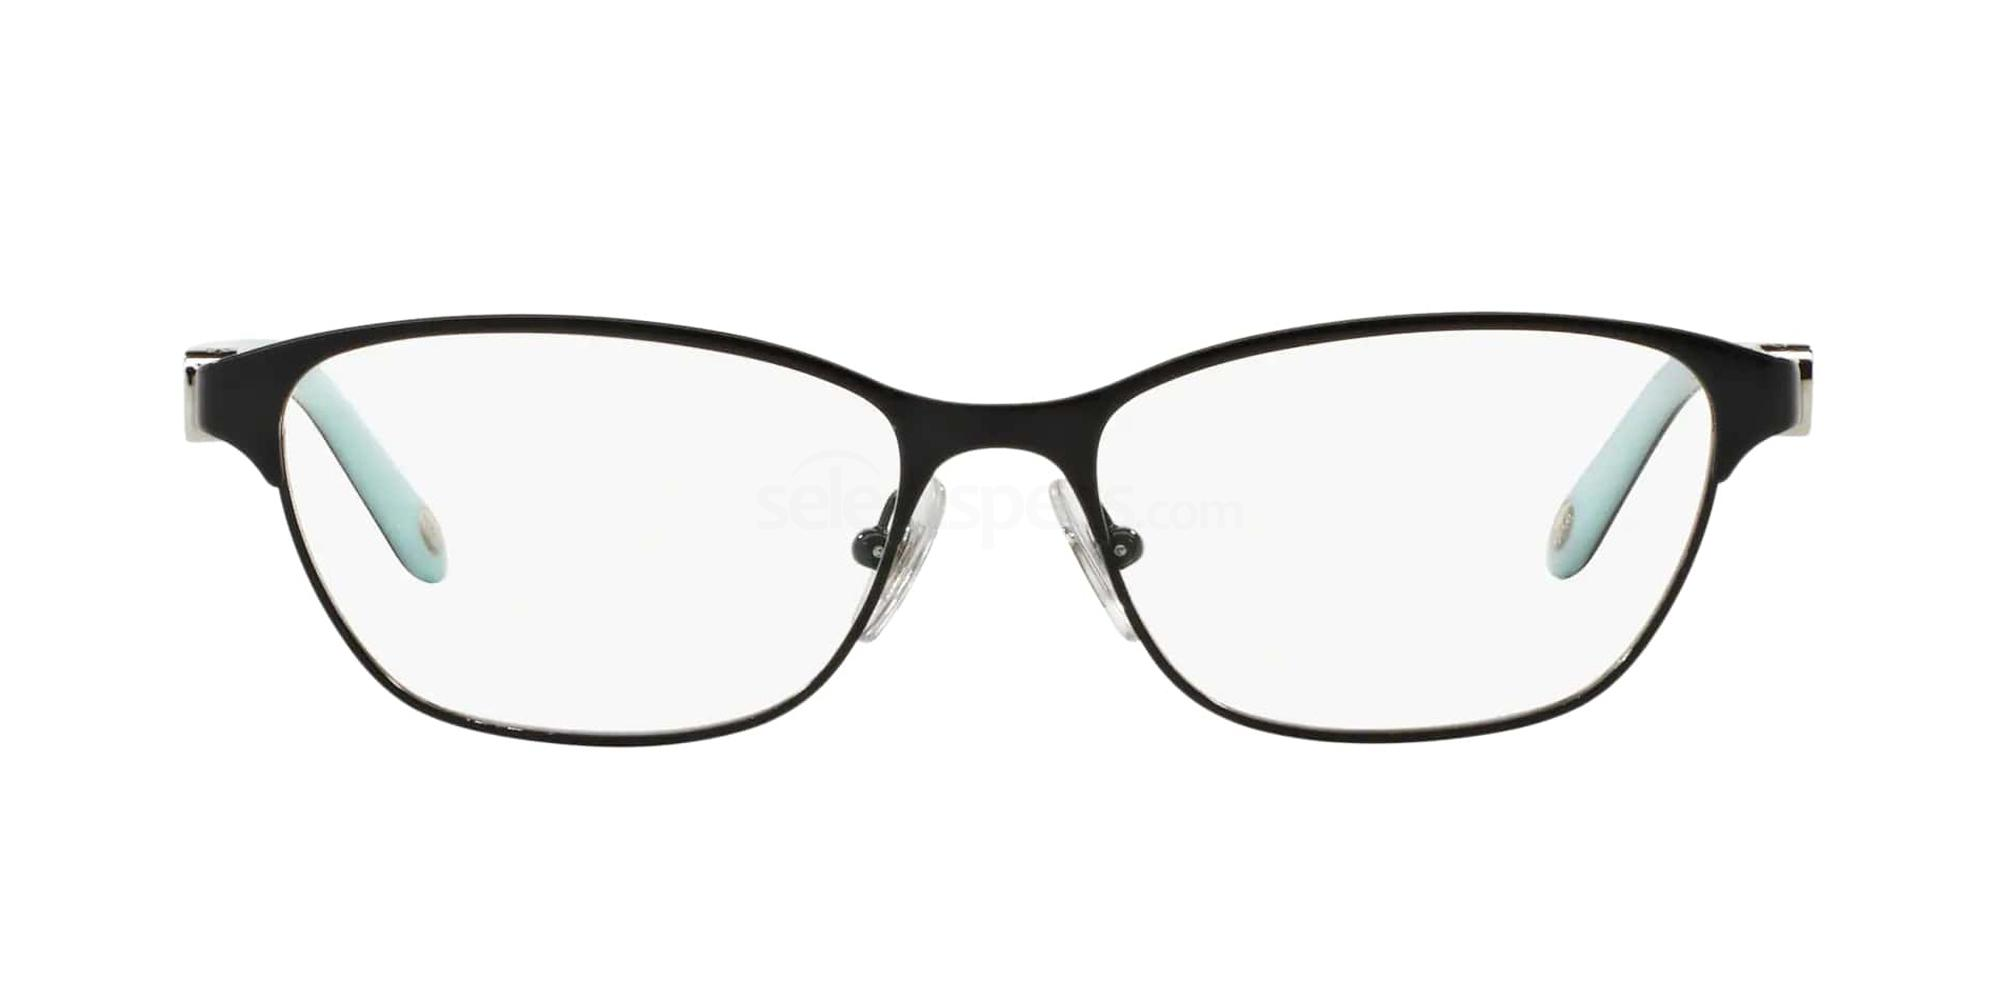 6007 TF1072 Glasses, Tiffany & Co.